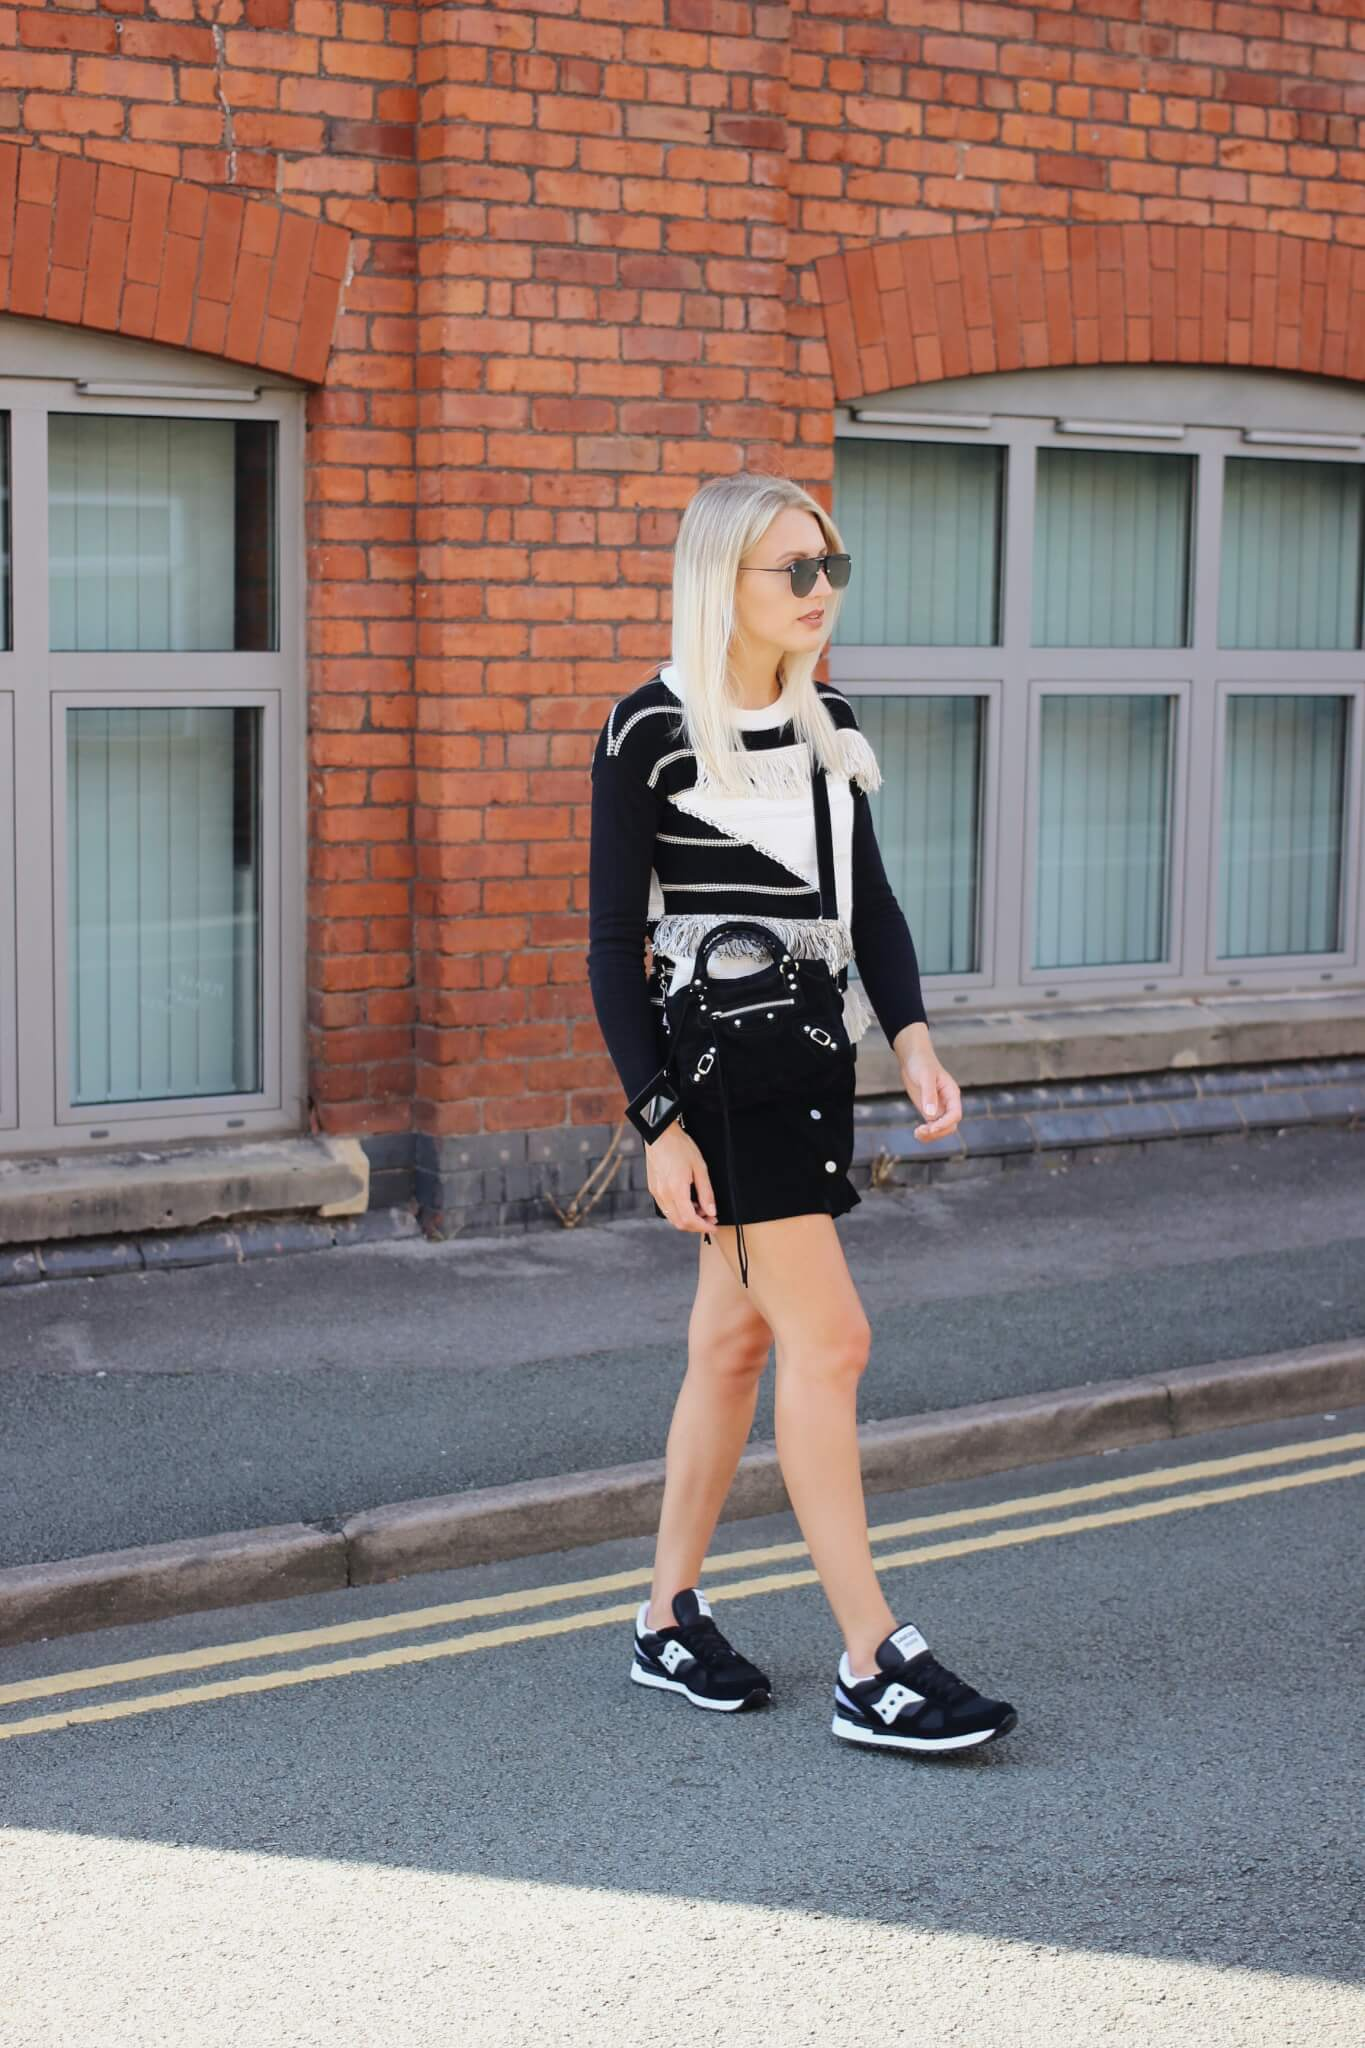 Styling Skirts And Trainers Off Duty Looks Part Two